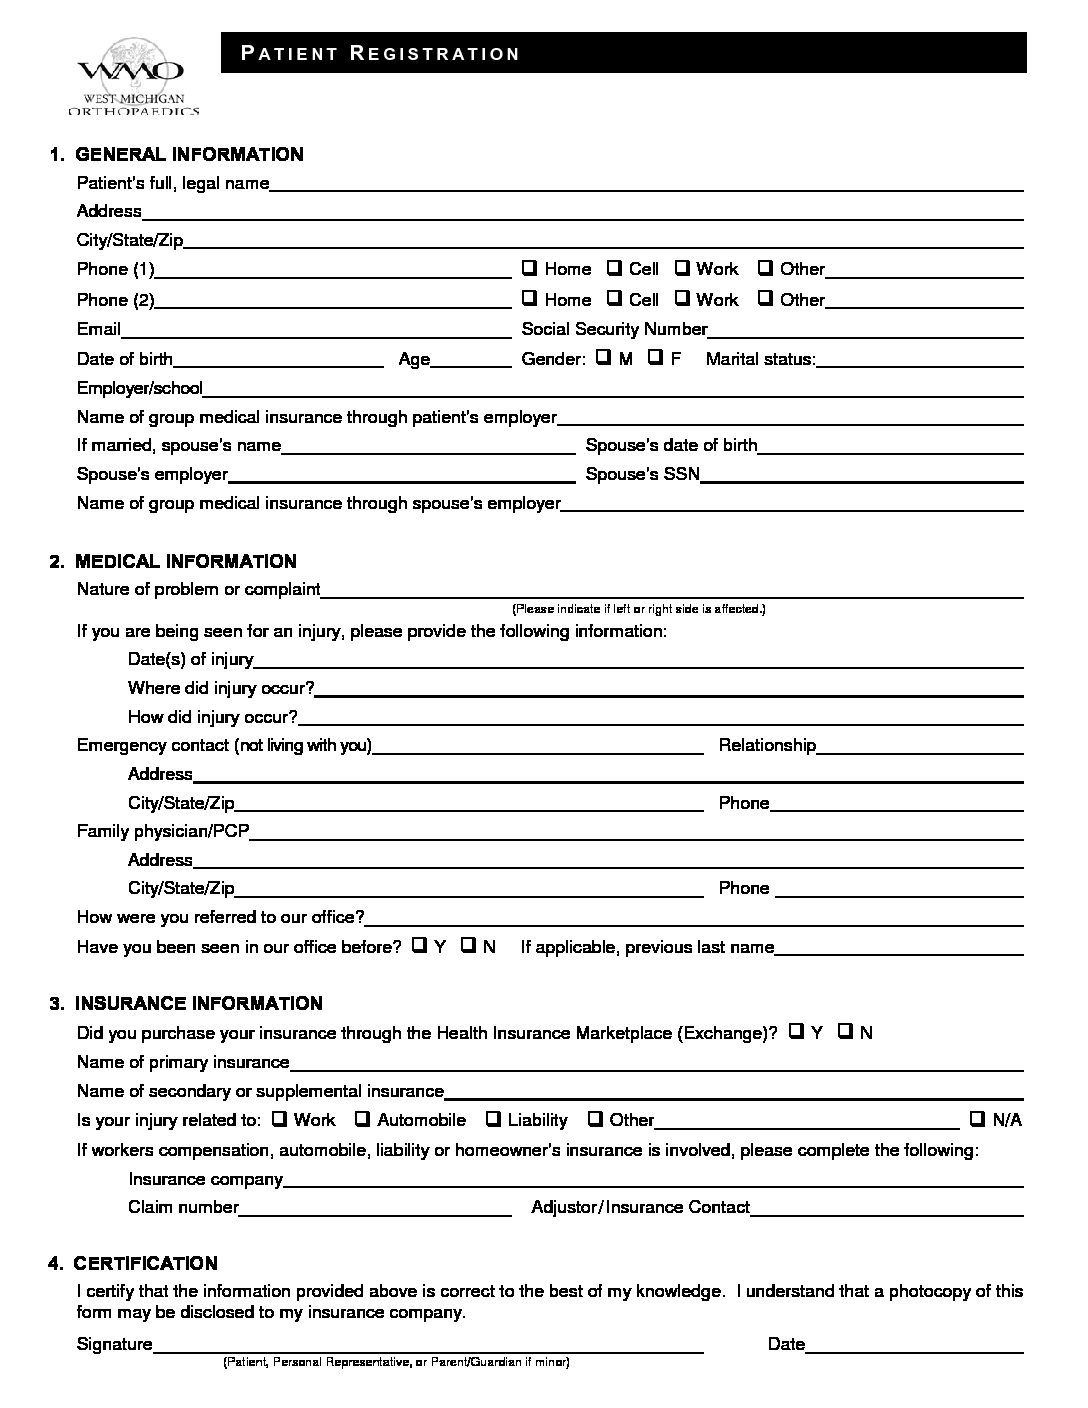 Forms – West Michigan Orthopaedics on surgery medical forms, patient health forms, blank patient information forms, new patient admissions, new patient charting, new patient information form, medical triage forms, printable nursing assessment forms, new patient signs, new patient intake form, insurance medical forms, printable doctor fill out forms, physical medical forms, emergency medical forms, blank medical history forms, new patient form template, patient info forms, diagnosis medical forms, hipaa patient consent forms, new baby medical forms,